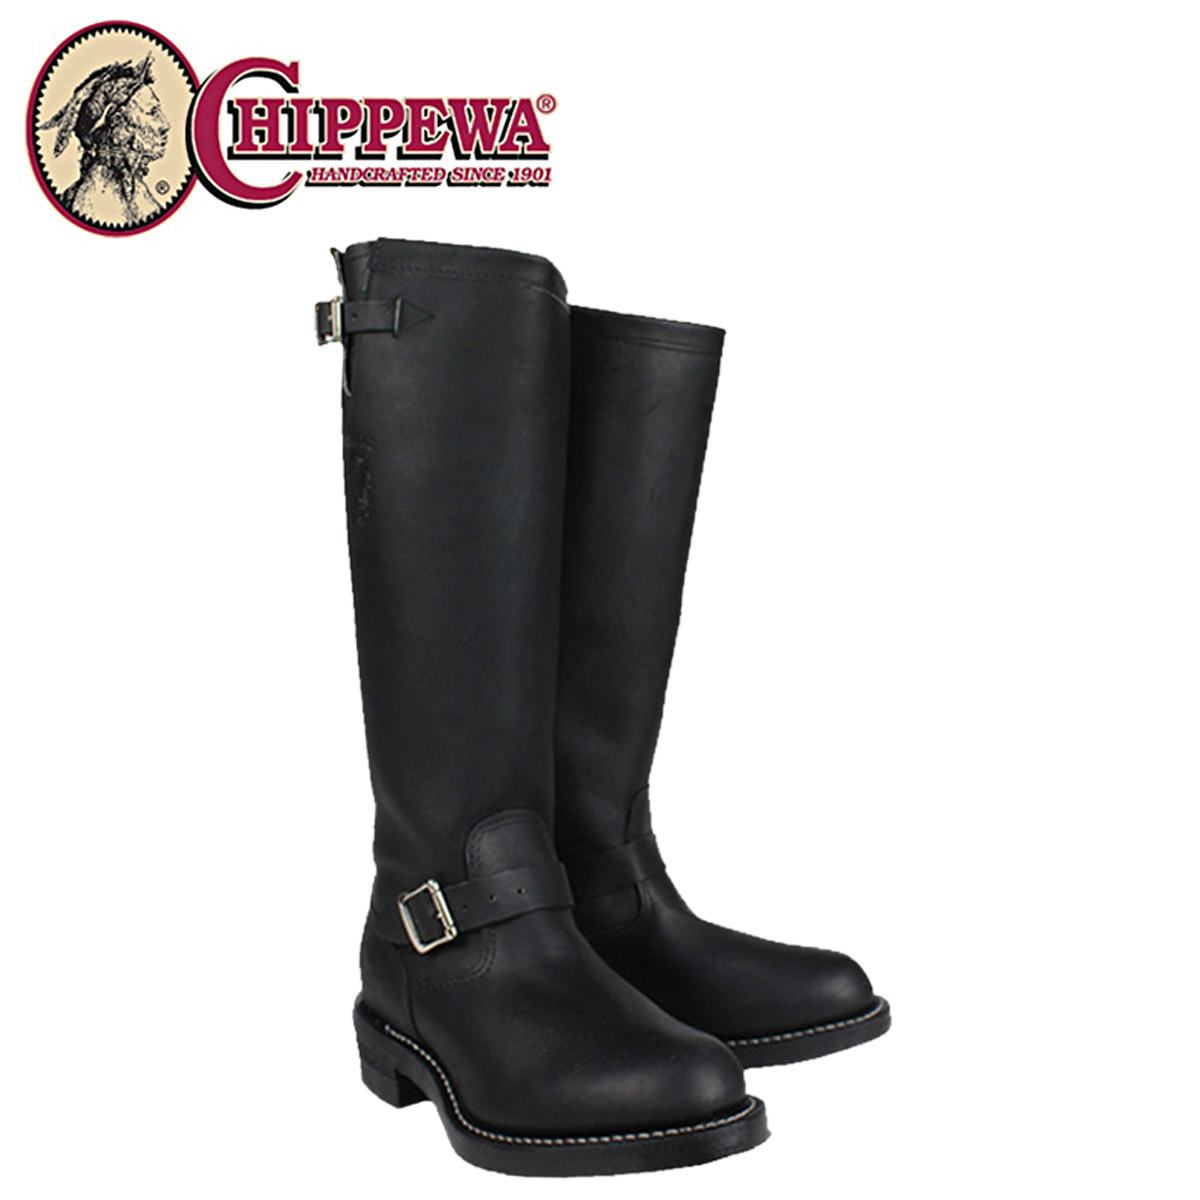 f550e4c72d7 [SOLD OUT]-Chippewa CHIPPEWA Engineer Boots [Black] 27908 17INCH BLACK  ODESSA ENGINEER BOOT D wise leather men's [regular]